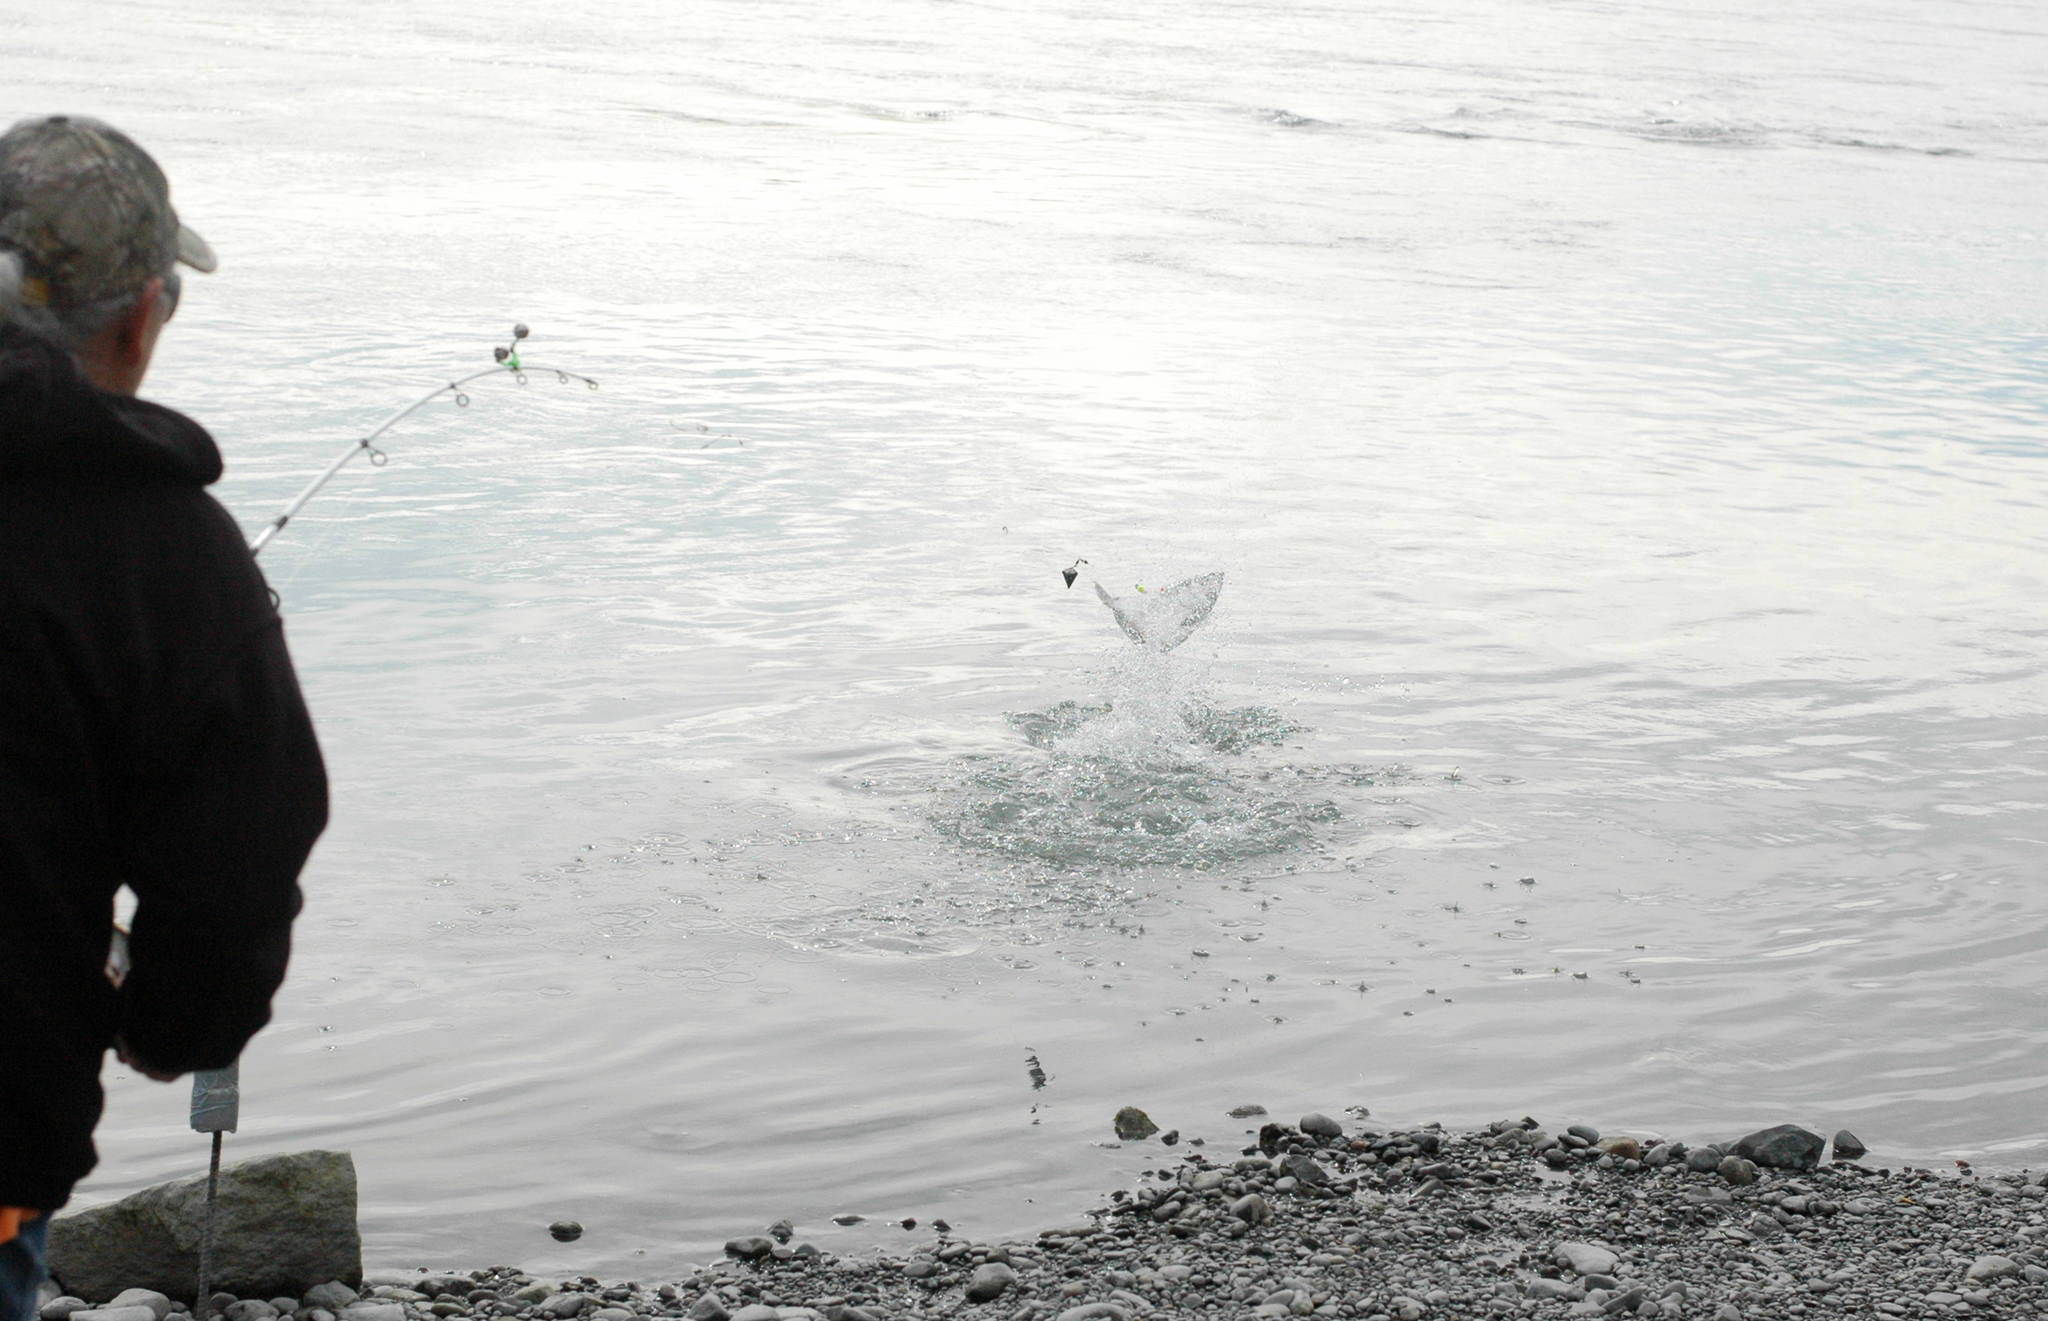 An angler wrestles with a silver salmon on her line in the Kenai River at Cunningham Park on Wednesday, Aug. 30, 2018 in Kenai, Alaska. (Photo by Elizabeth Earl/Peninsula Clarion)